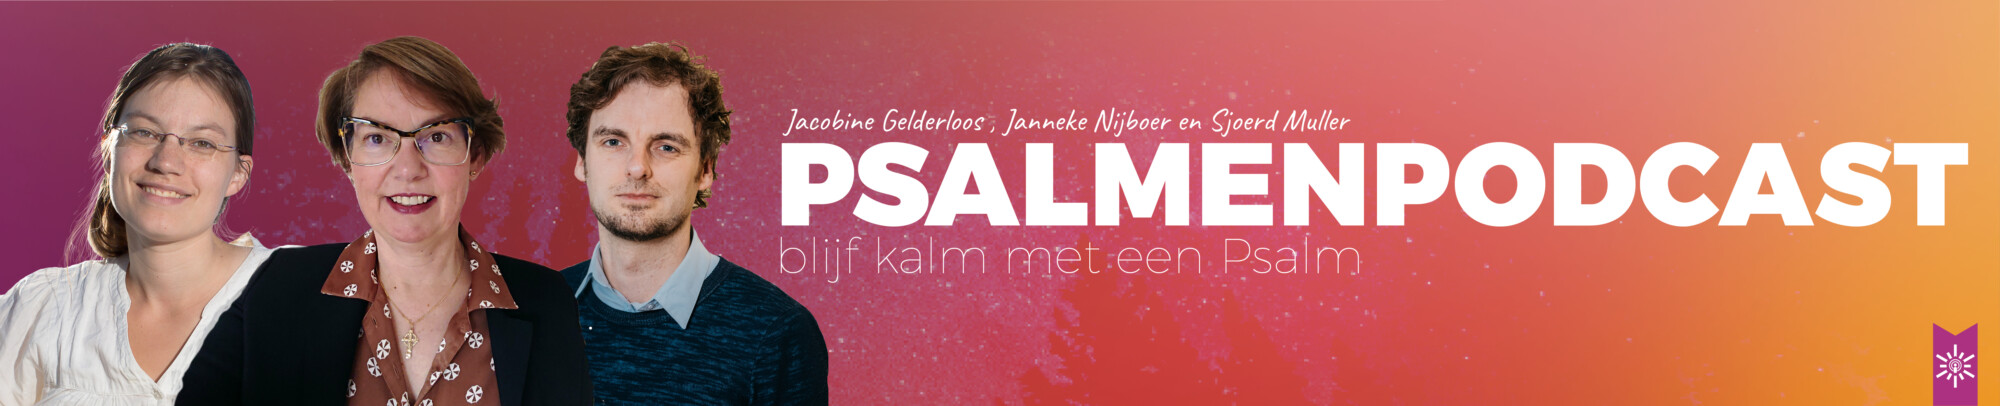 psalmenpodcast-header